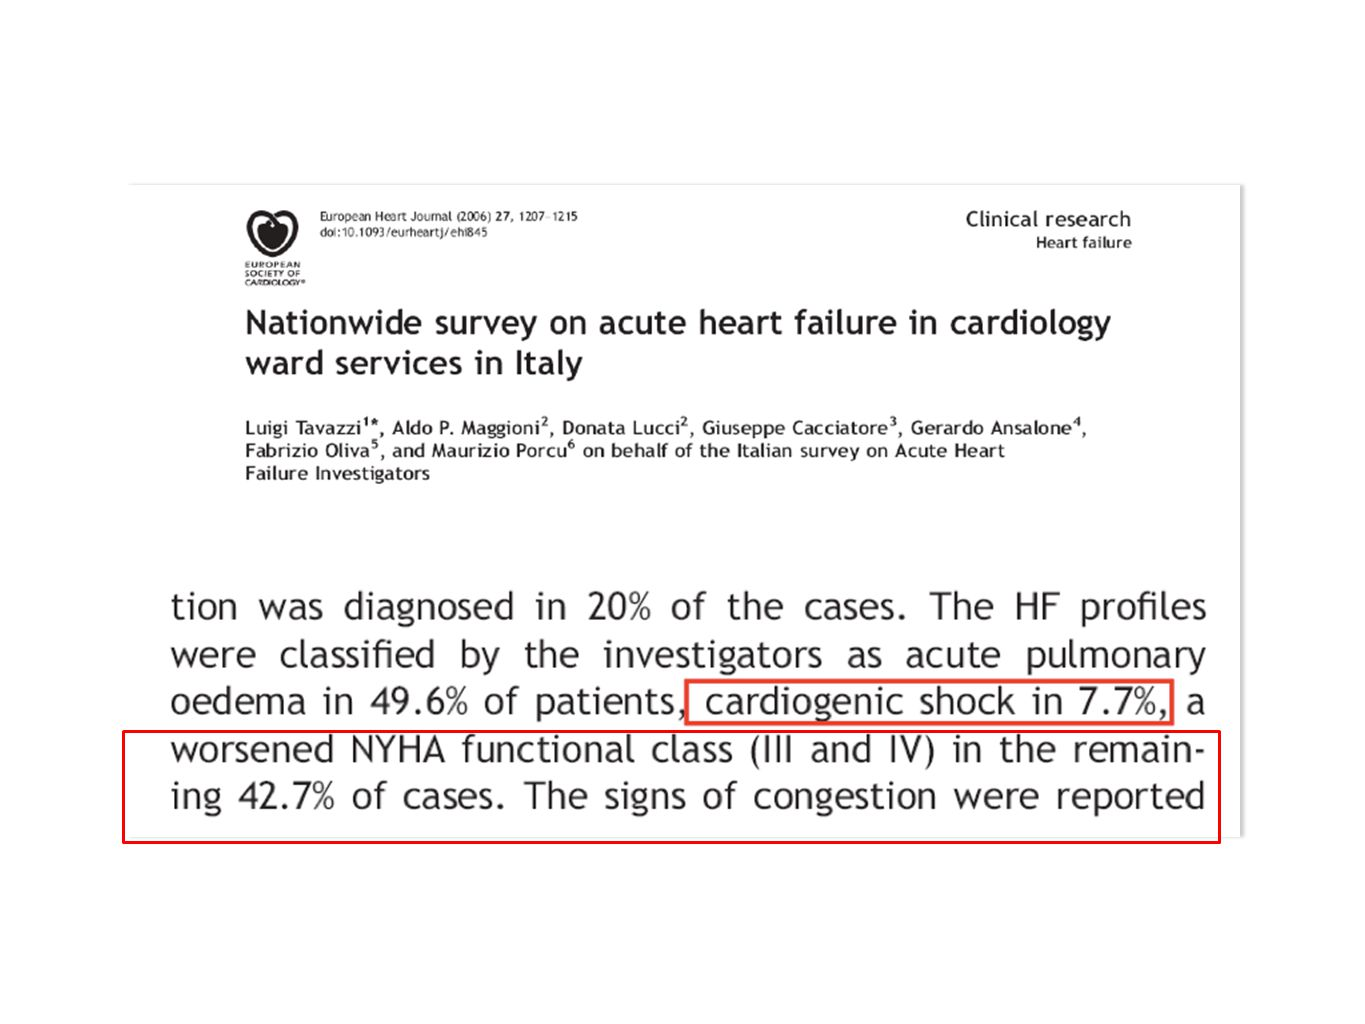 IMMEDIATE CLINICAL OUTCOME (2009-2013) variableLVAD 22 patients 30 days survival*91± 0,55 2 pt.